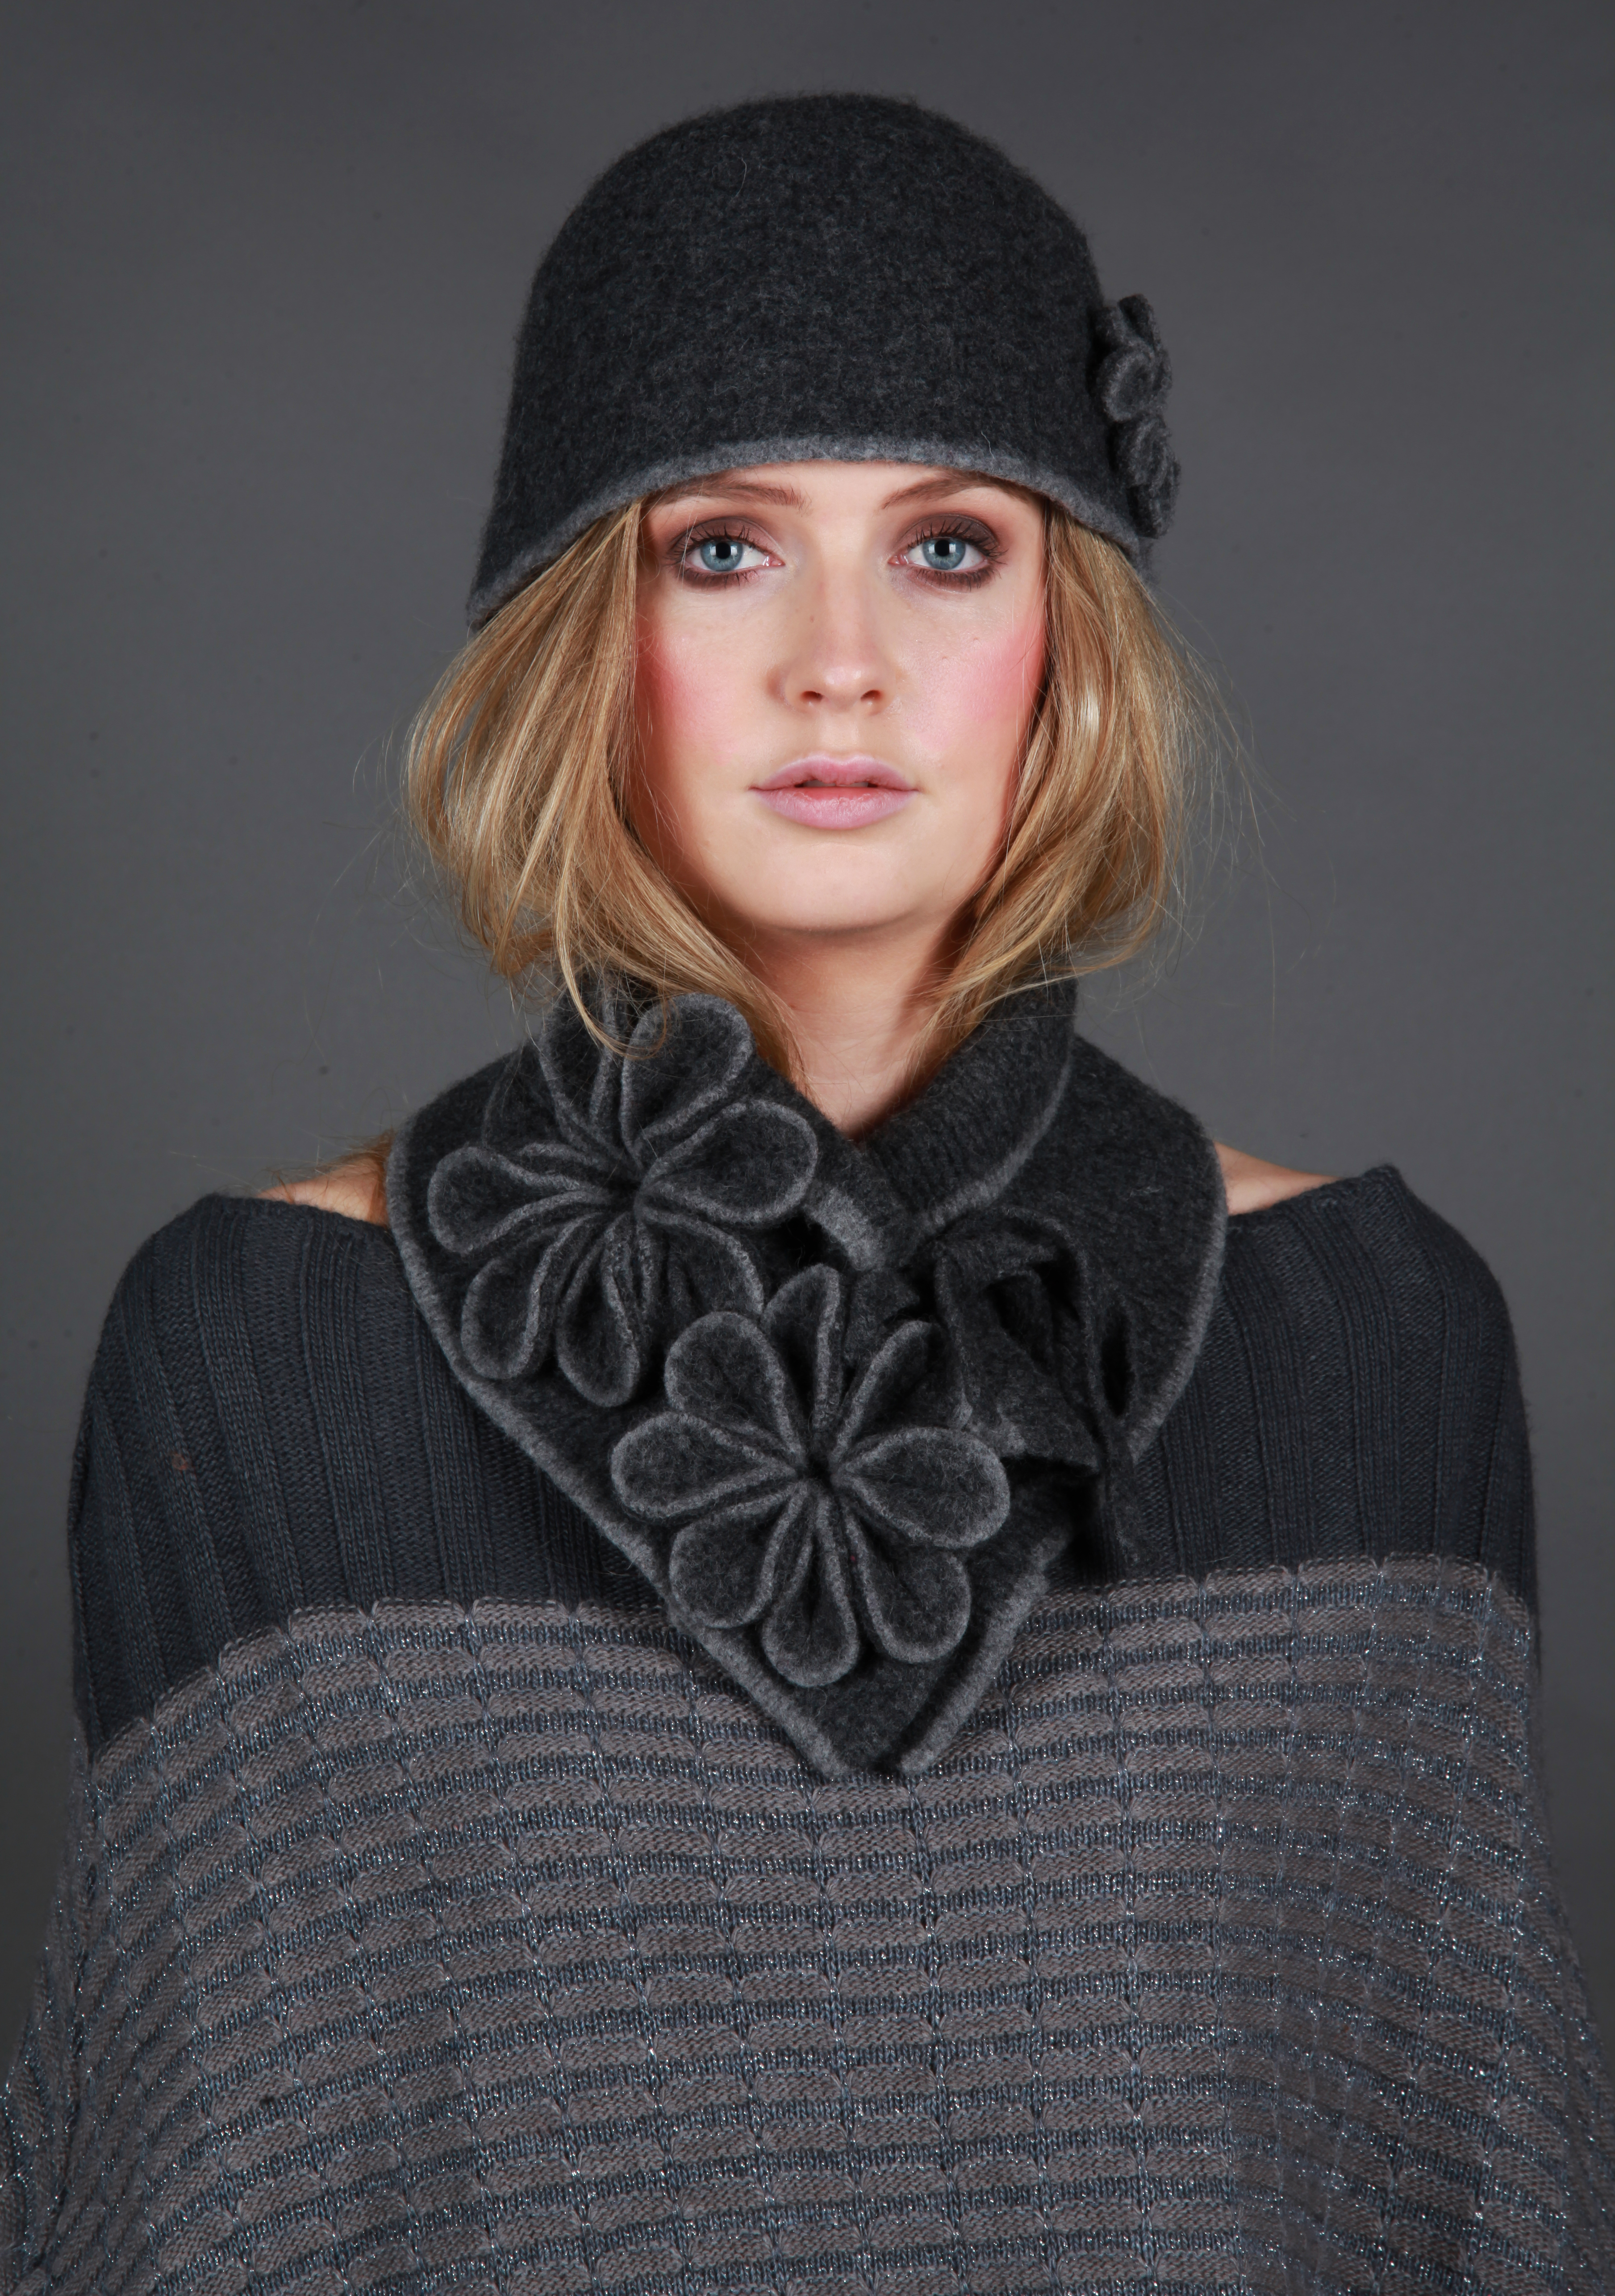 Coloured Rim Blossom Hat with Tie Blossom Scarf